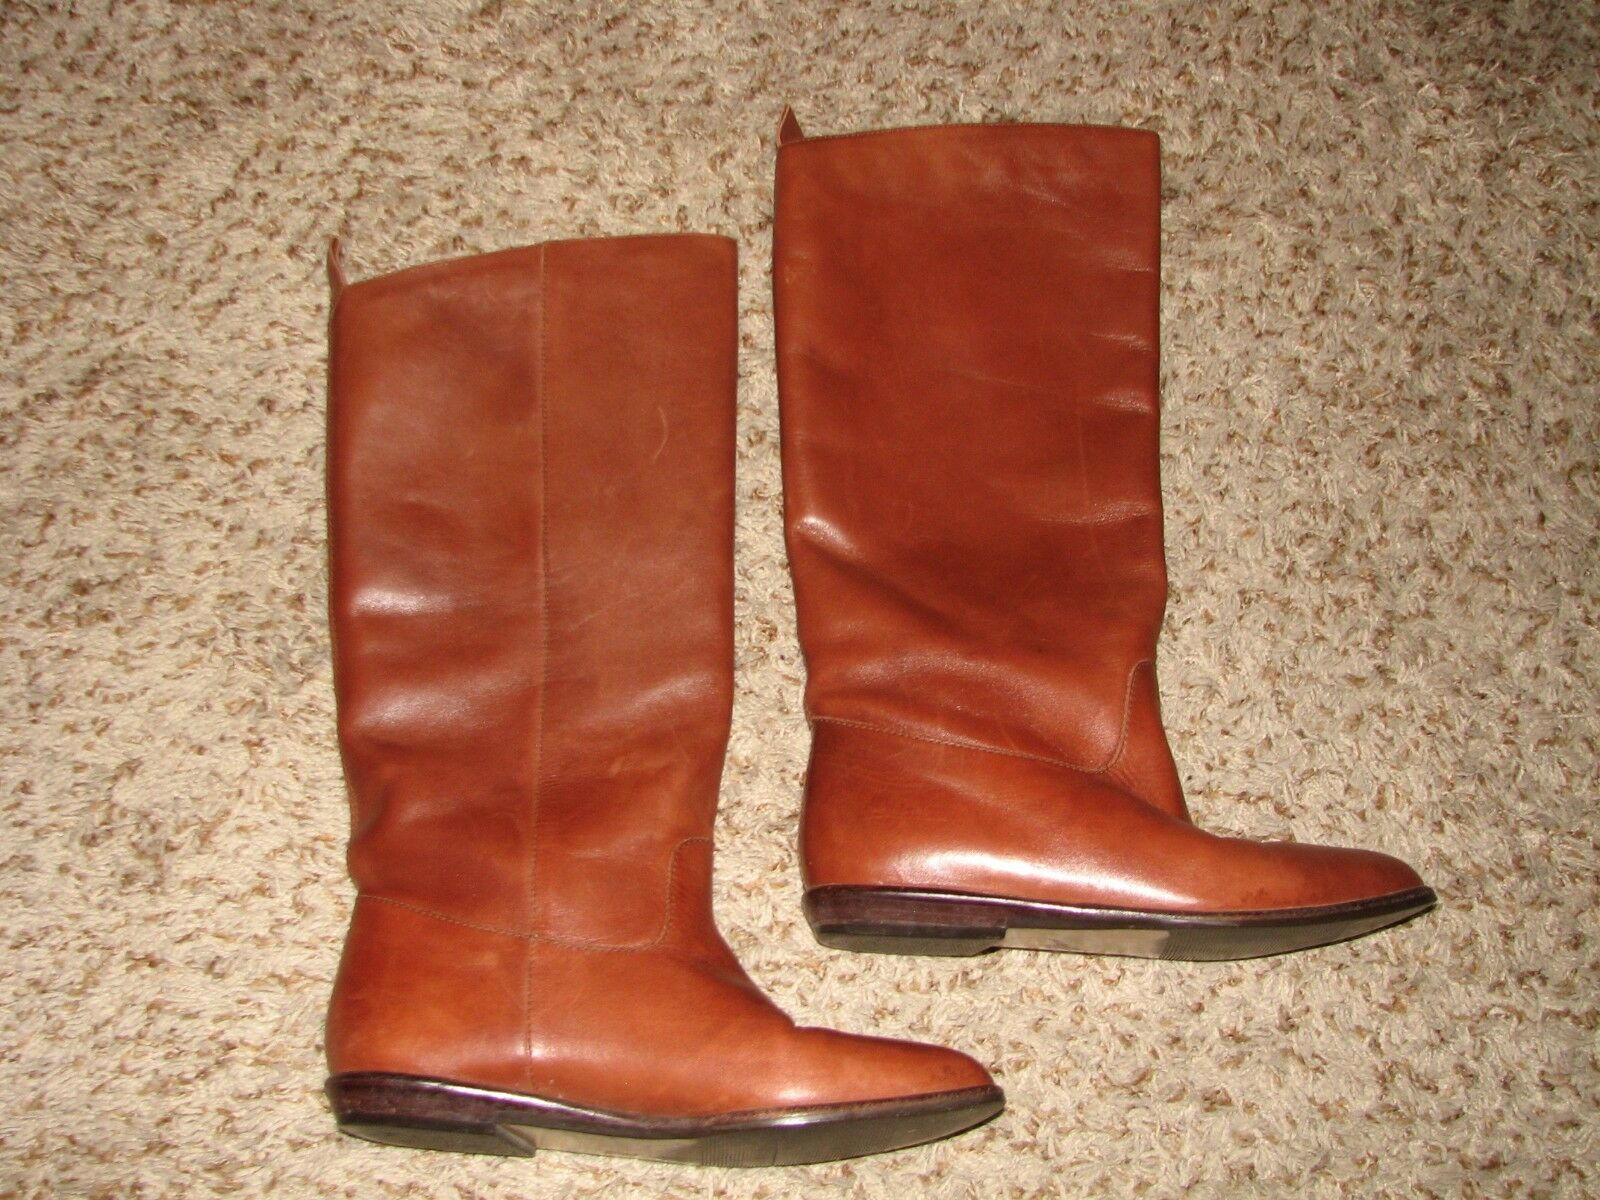 White Mountain Tall Fashion Boots Brown Leather Low Heel Sz 7.5